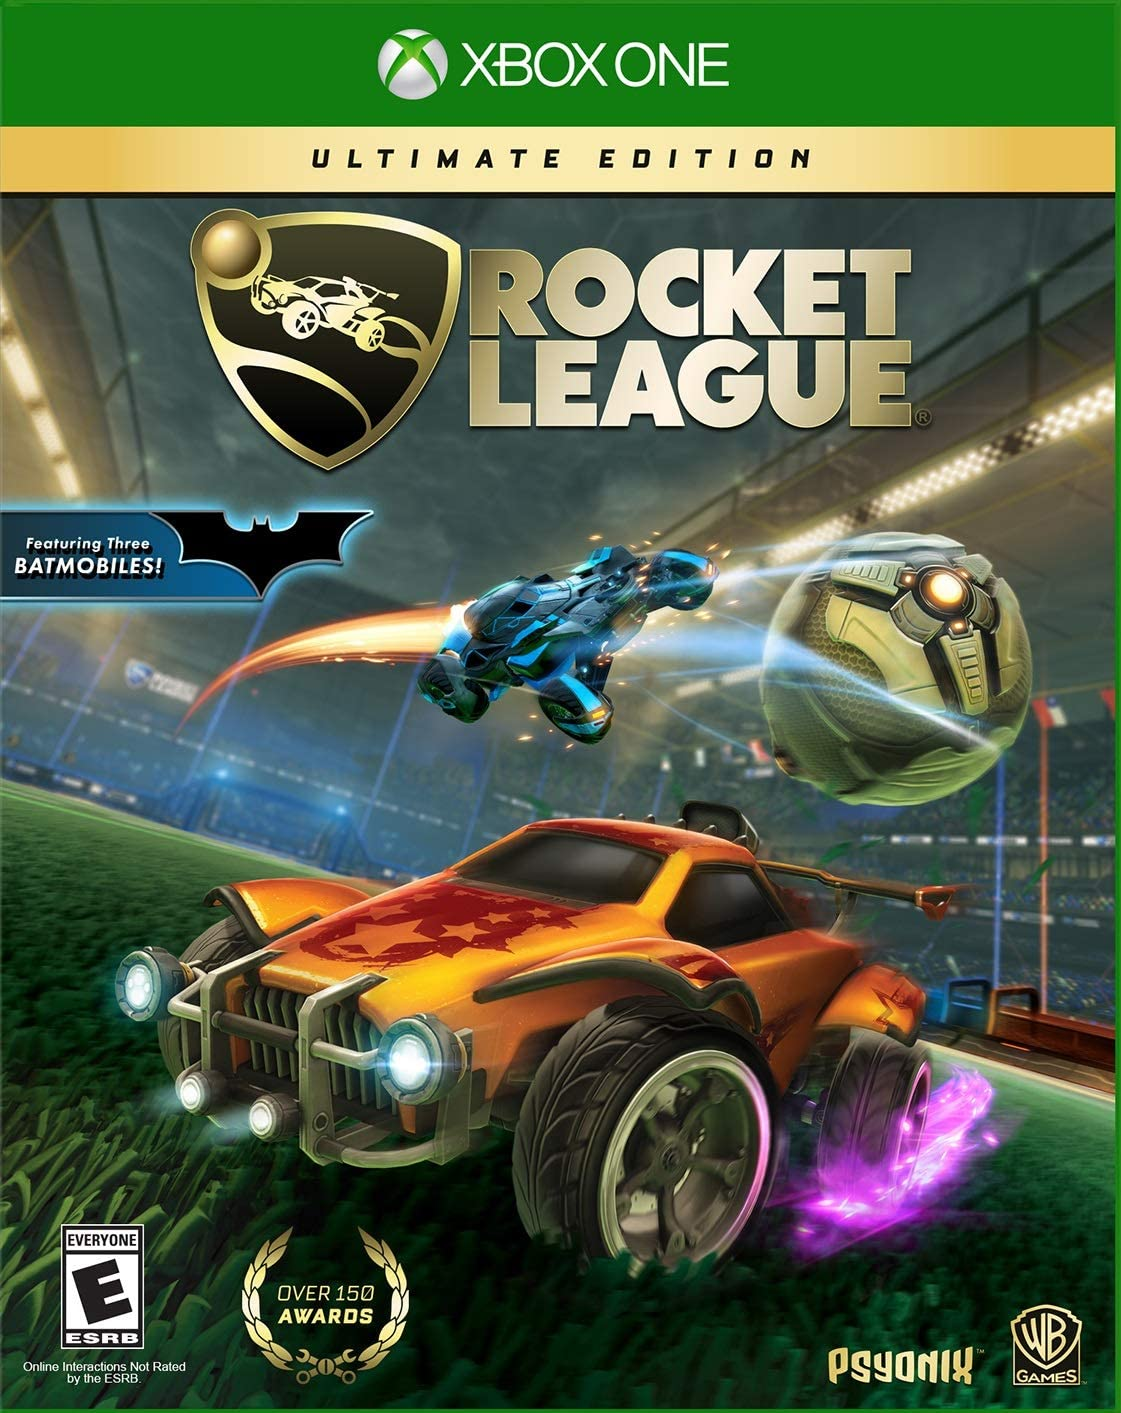 Amazon.com: Rocket League Ultimate Edition - Xbox One: Whv Games: Video  Games